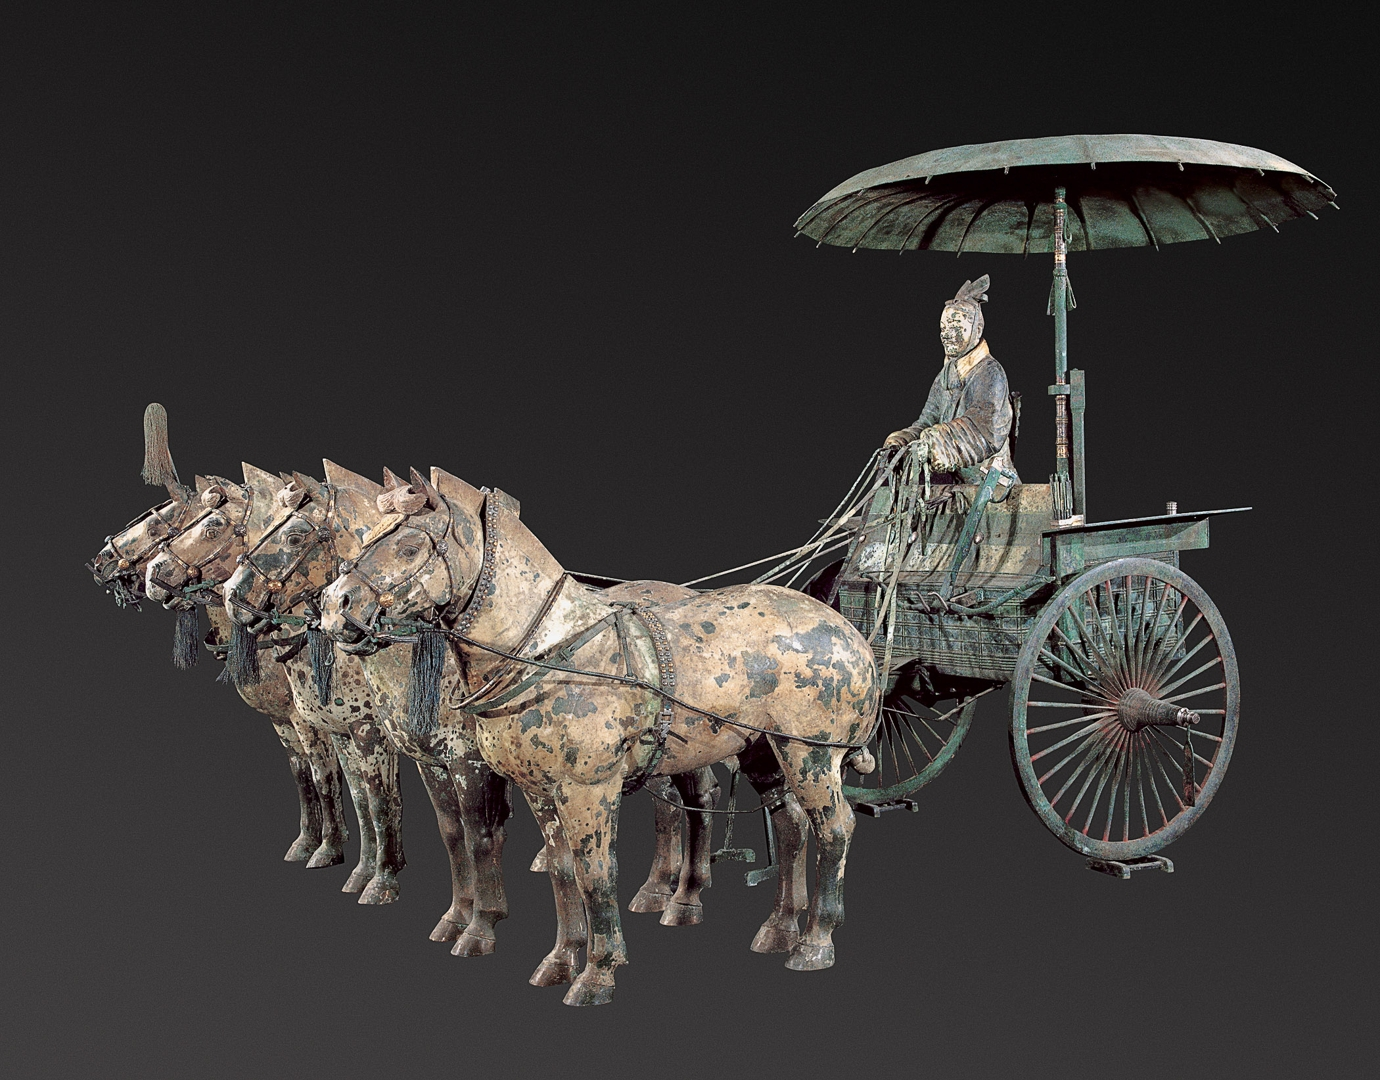 Melbourne Winter Masterpieces: Terracotta Warriors | Cai Guo-Qiang image